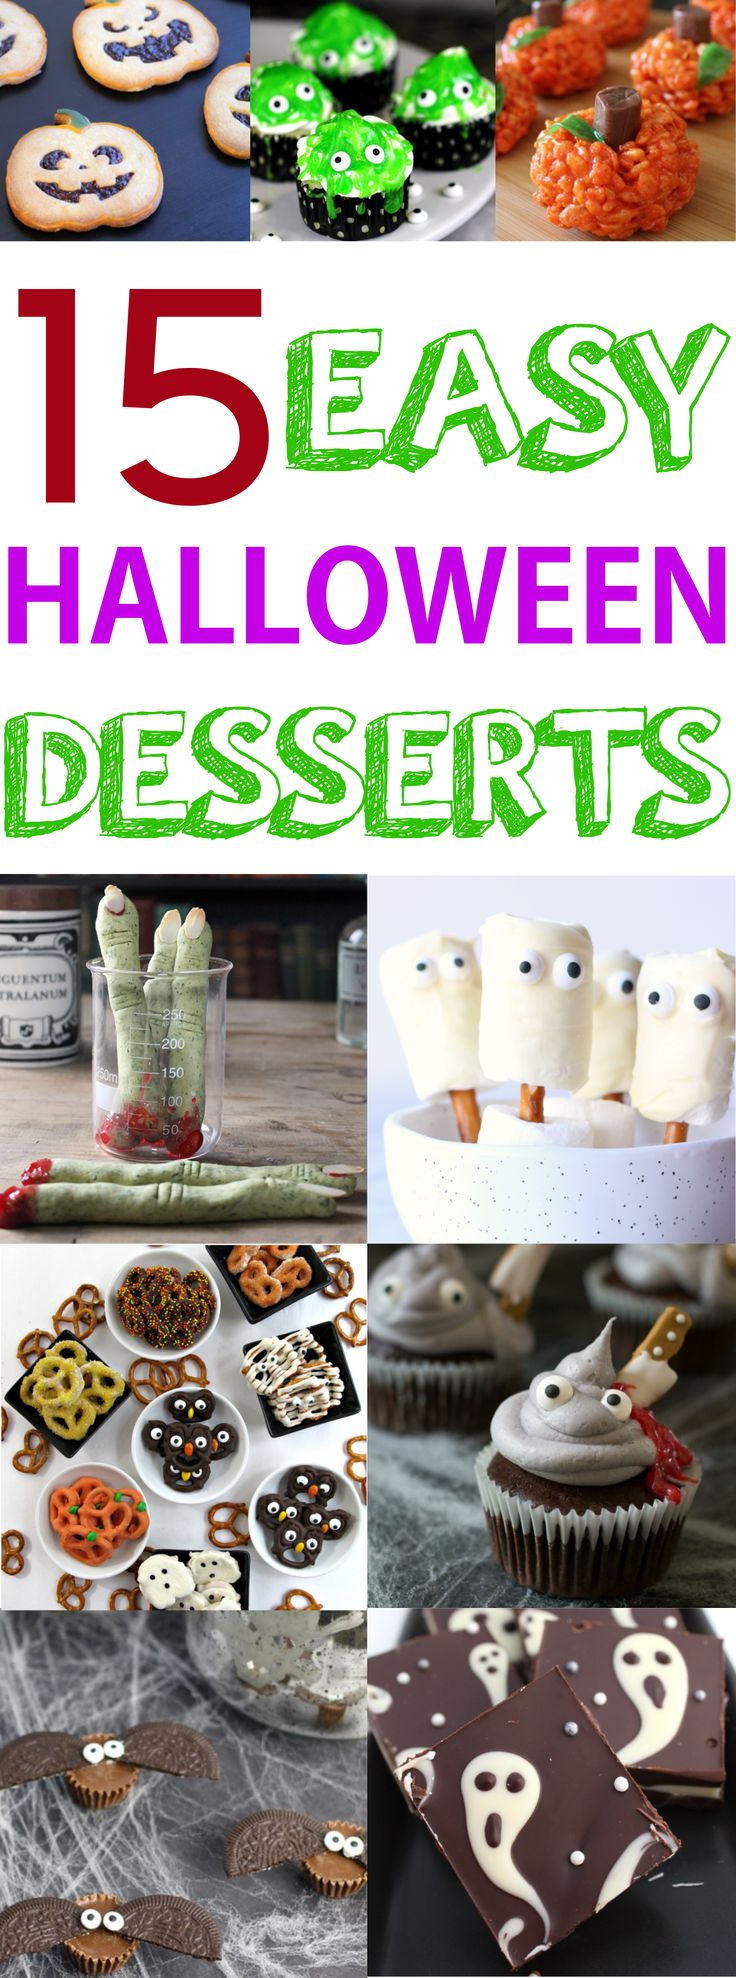 Trick or treat? I am going to jazz up the treats in this Halloween! These Halloween dessert recipes are so easy to make! Many no-bake recipes and most of them requires less then five ingredients. #halloween #halloweenmakeup #halloweenparty #halloweenrecipes #halloweenready #halloweendesserts #halloweentreats